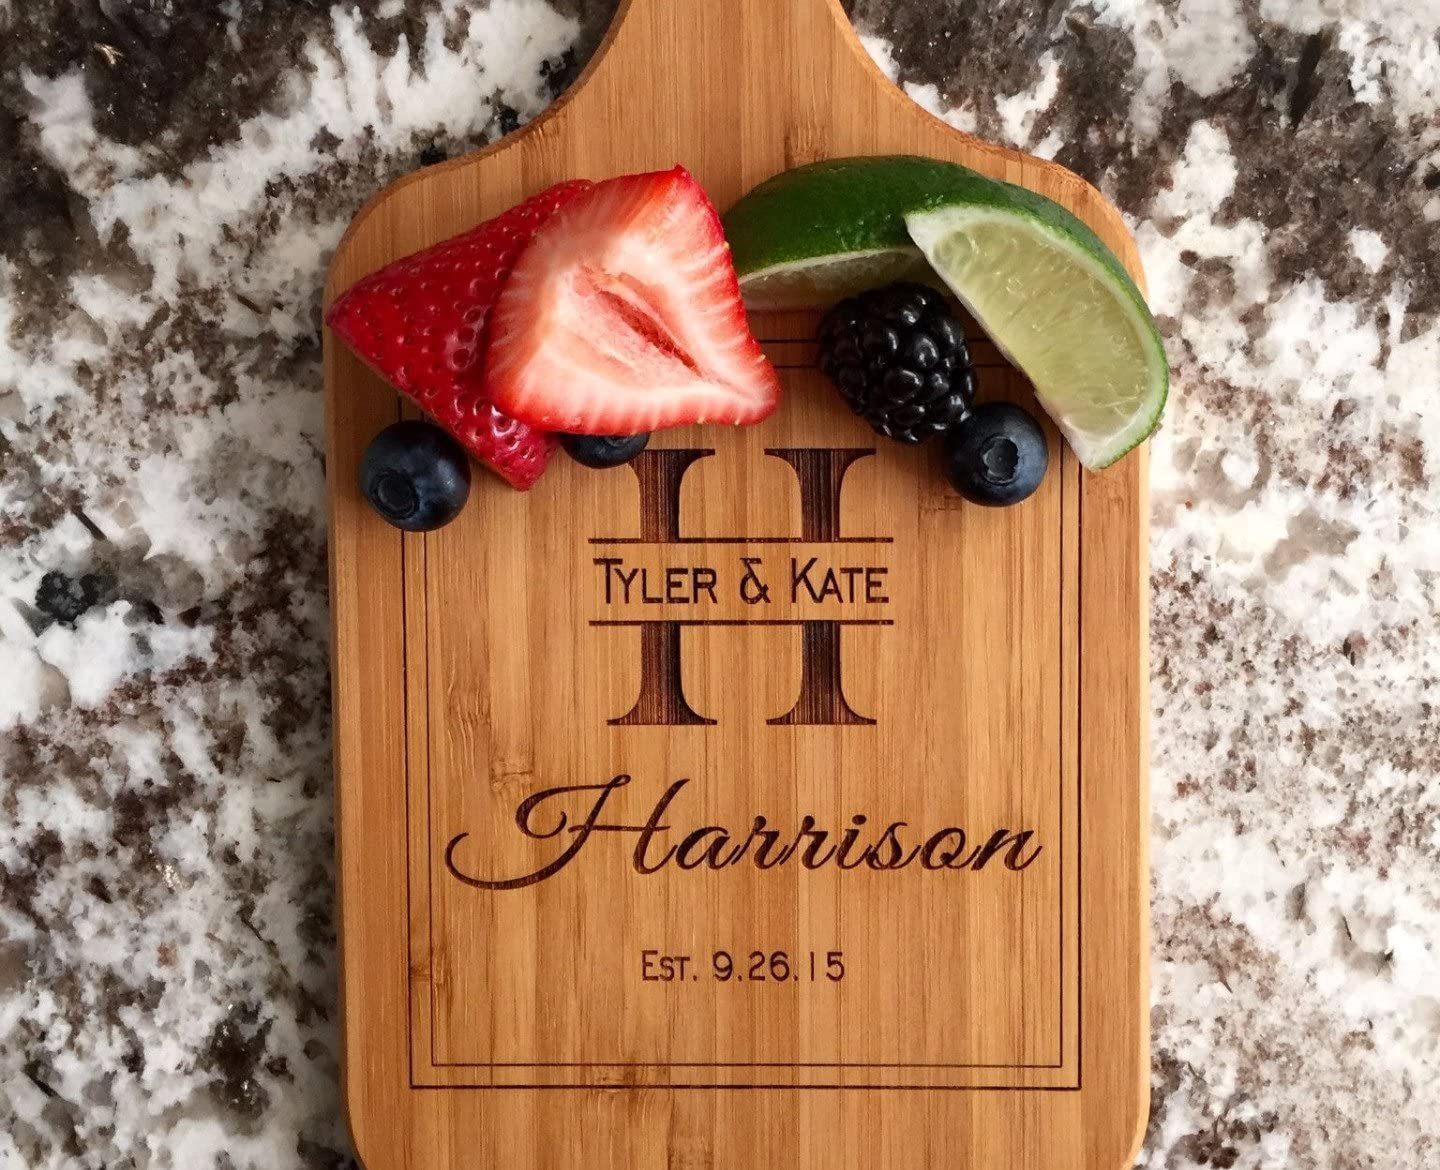 Qualtry - Personalized Mini Wood Cutting Boards - Perfect Gifts For Weddings, Bridal Showers, and Housewarmings - (5 x 11 Bamboo Paddle Shaped, Harrison Design)